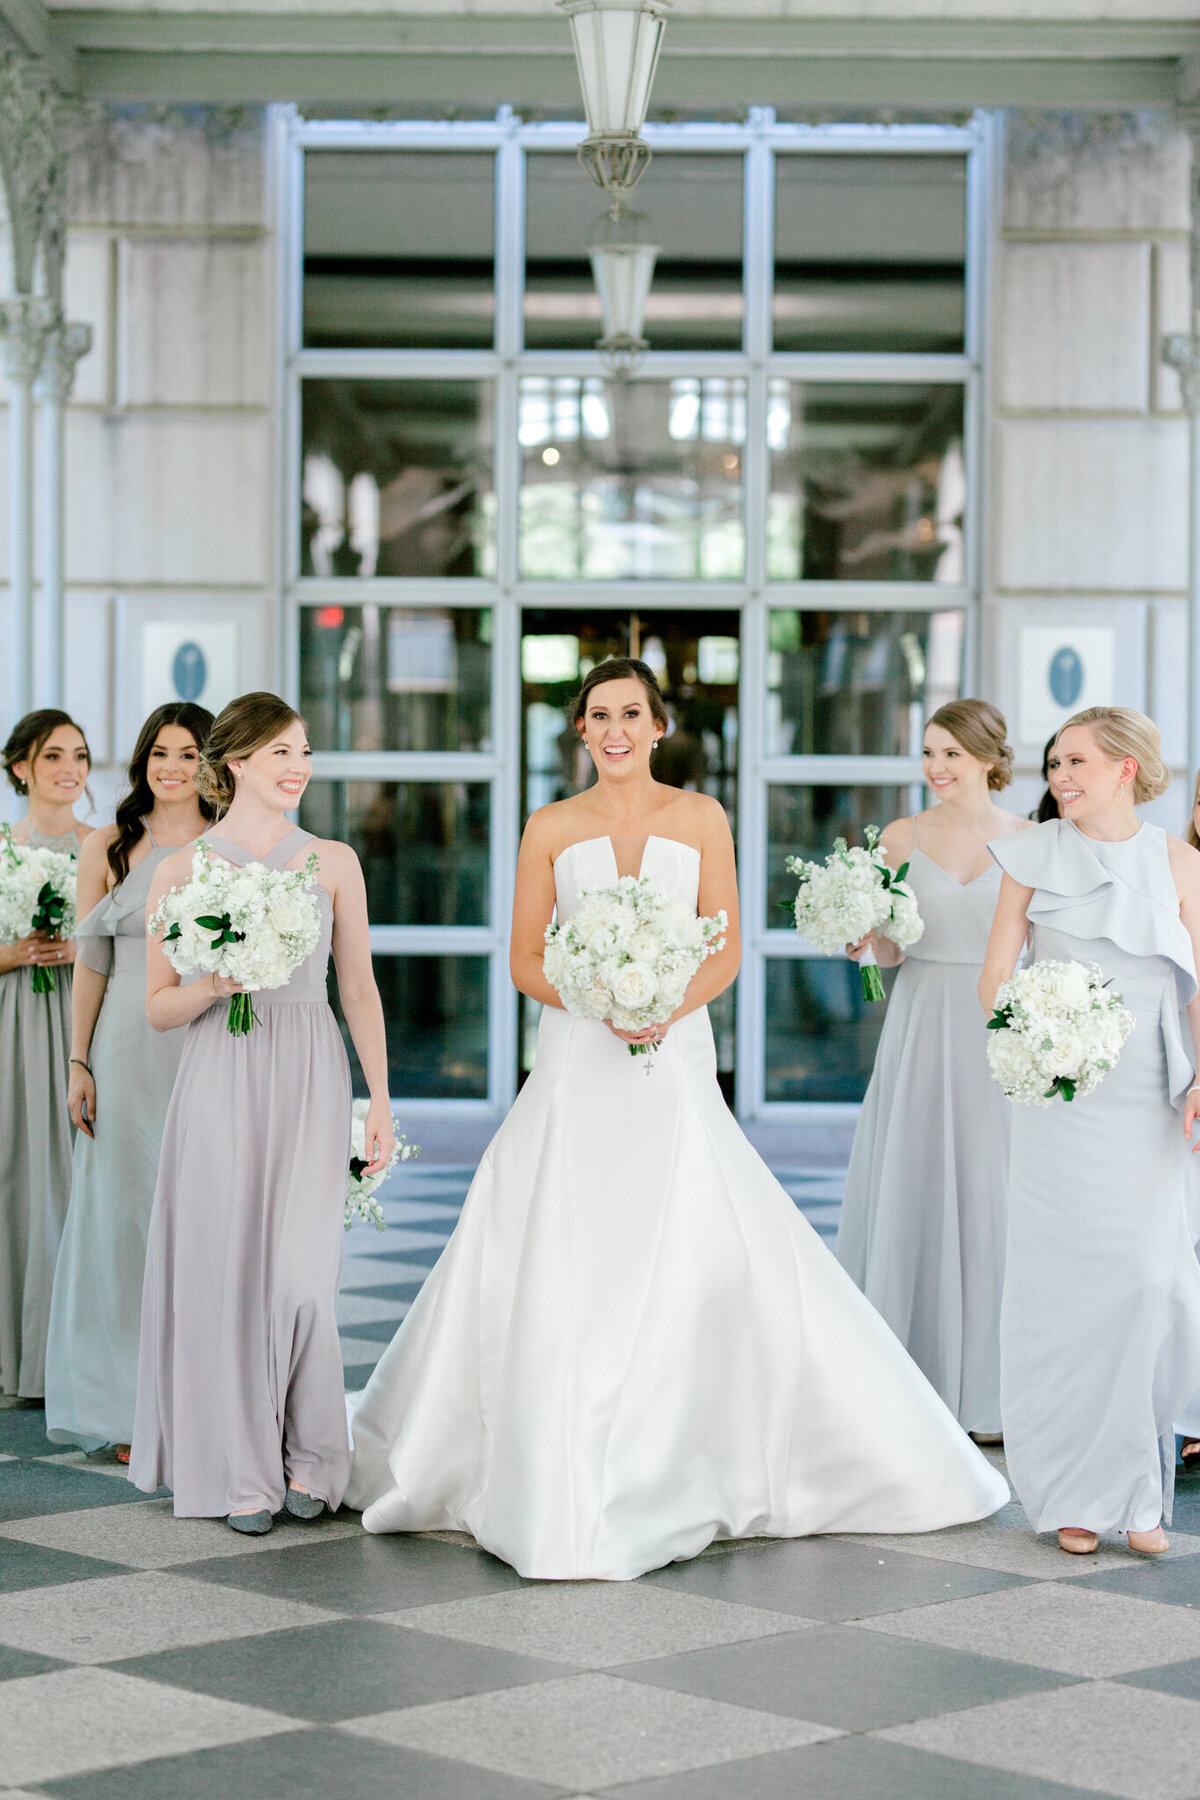 Wedding at the Crescent Court Hotel and Highland Park United Methodist Church in Dallas | Sami Kathryn Photography | DFW Wedding Photographer-73